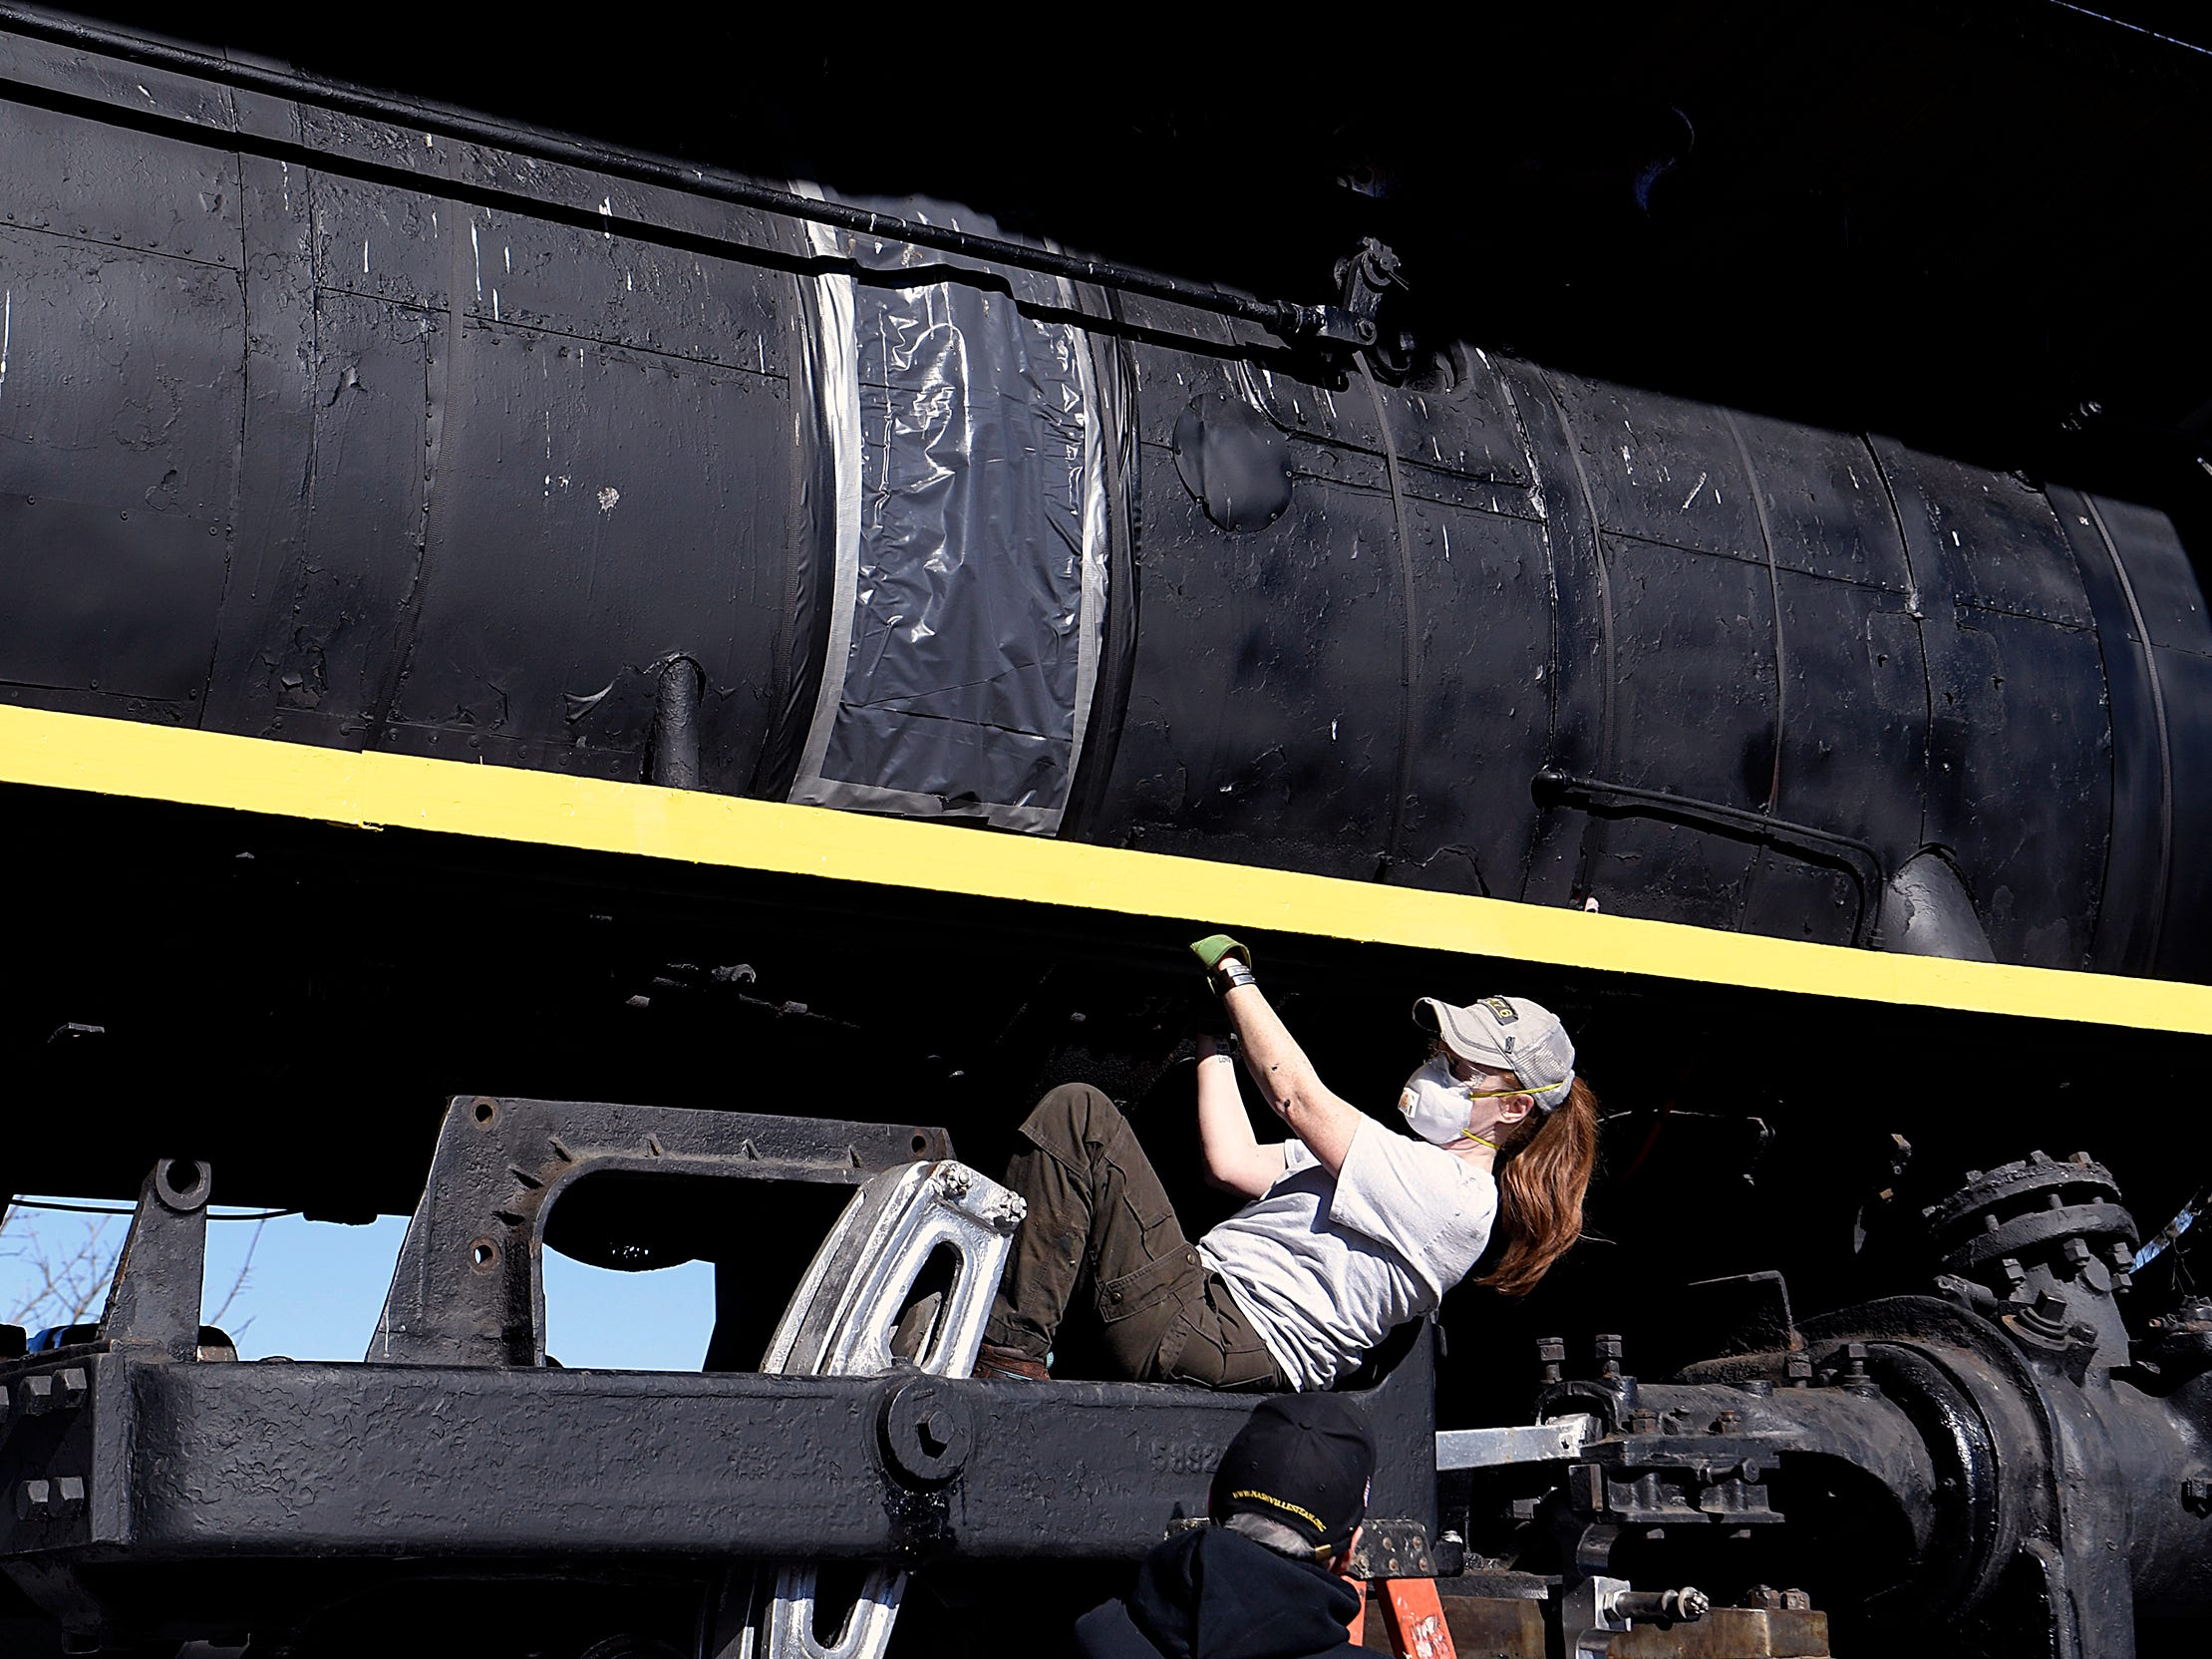 Volunteer Rebecca Bender works on the steam locomotive  No. 576 on Saturday, ja. 6, 2019 before it leaves its longtime home at Centennial Park. No. 576 is being to be moved and then restored to return to the tracks.